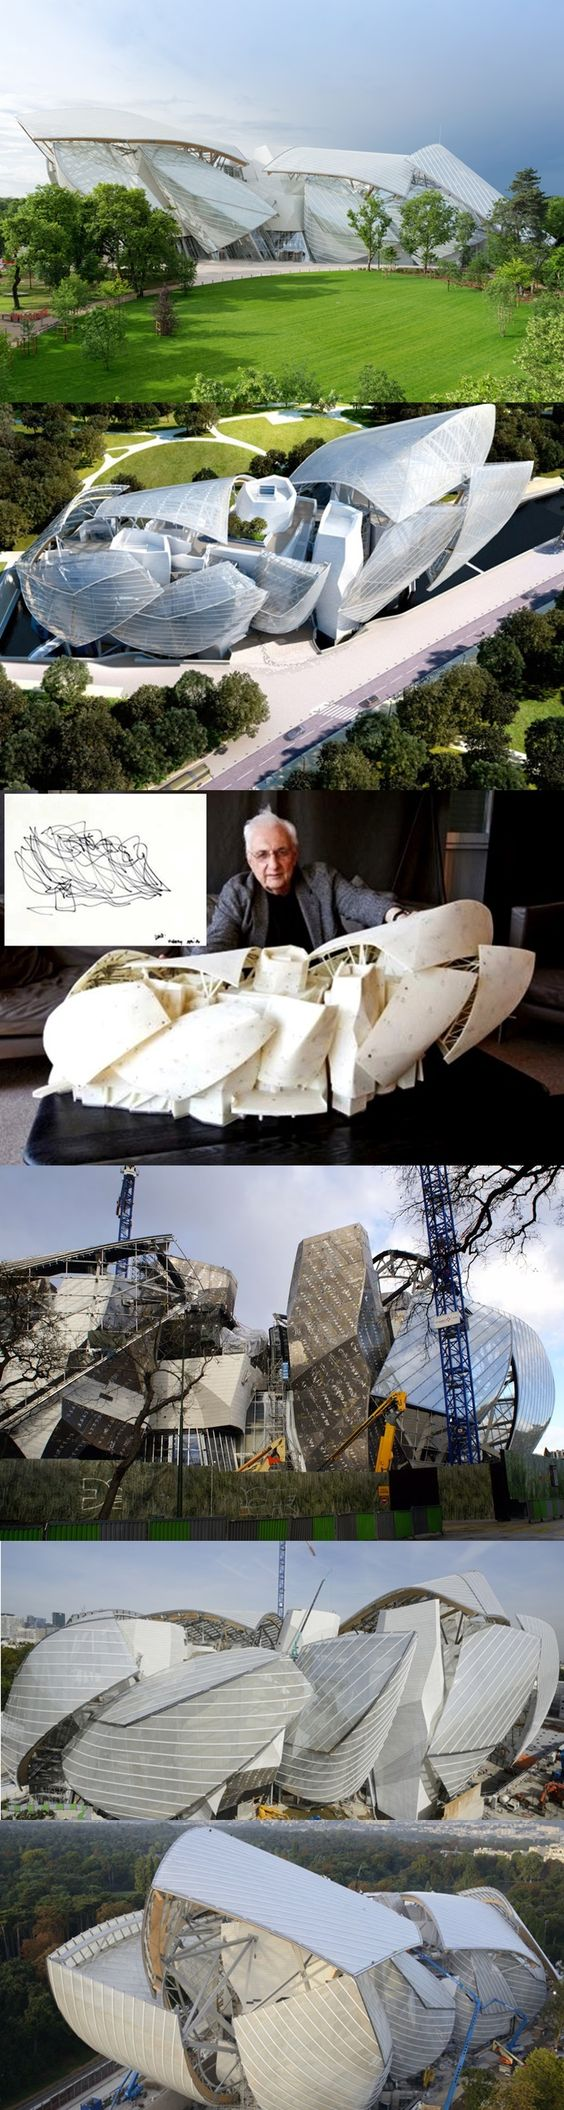 Frank Gehry's arts centre for a cultural foundation established by fashion brand Louis Vuitton, Jardin d'Acclimatation, Paris.